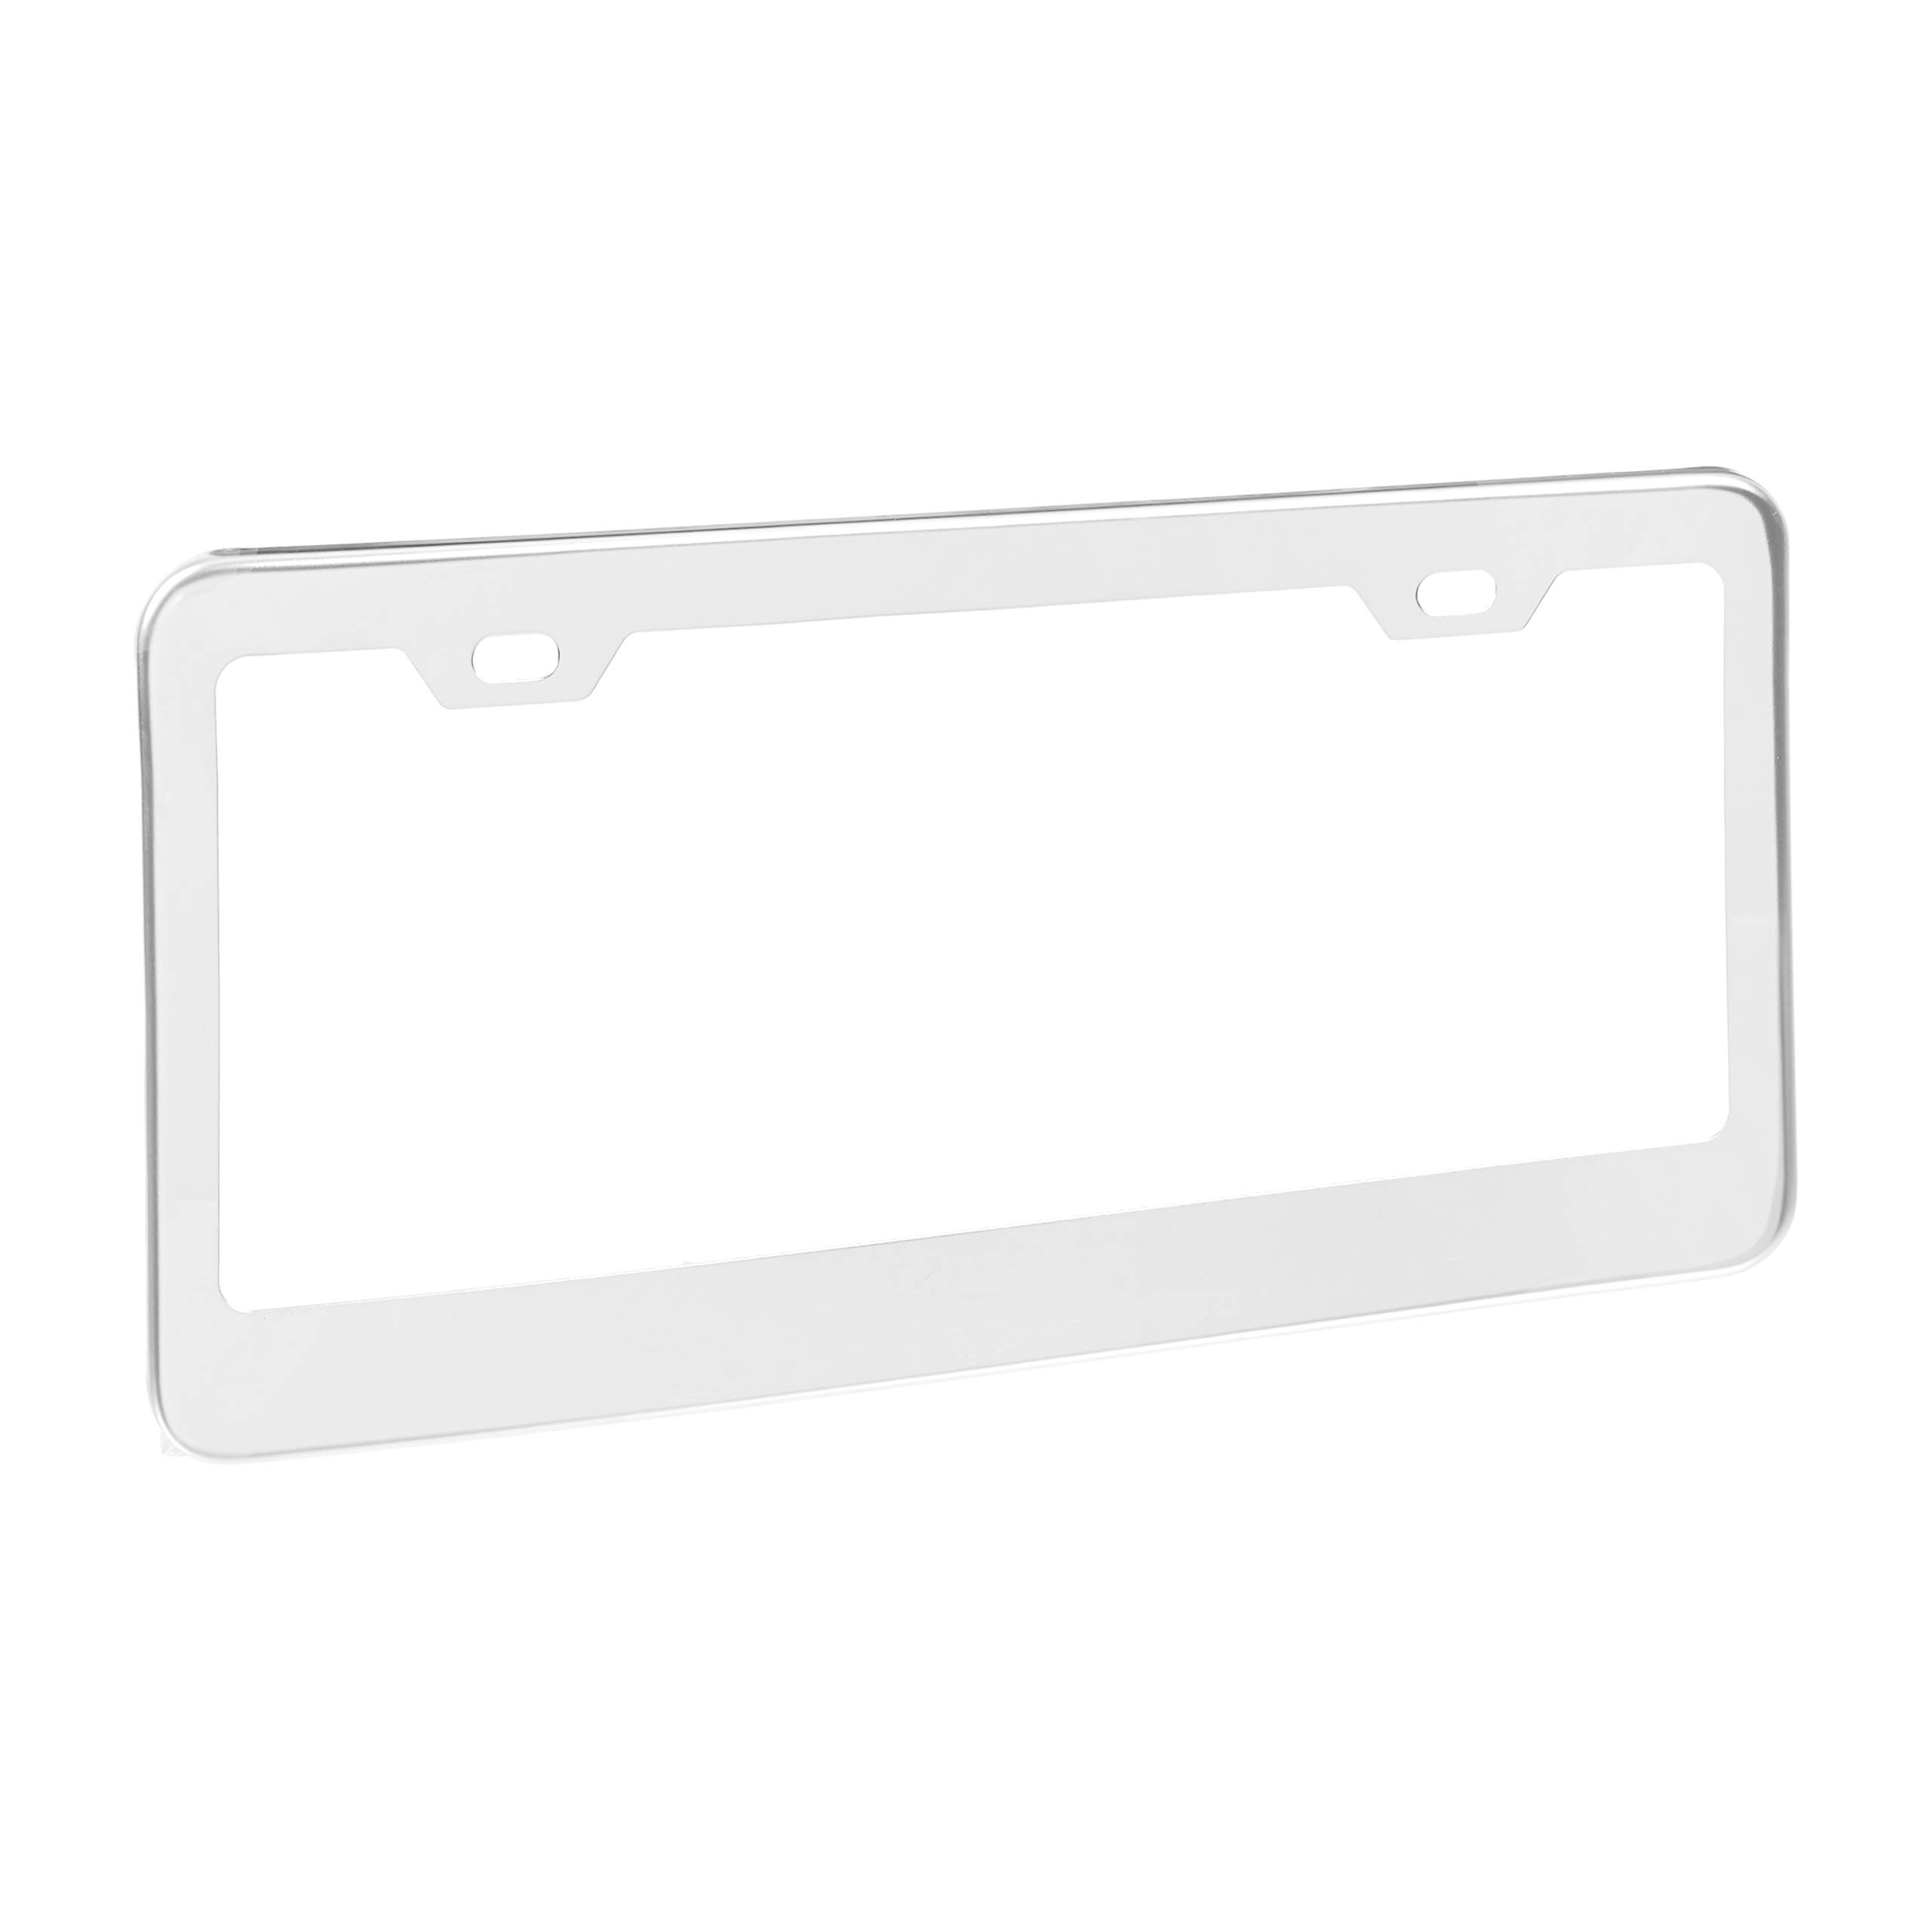 Amazon Basics Stainless Steel License Plate Frame Pair with Screw Caps - 2-Hole, 12.2'' x 6.3'', Silver